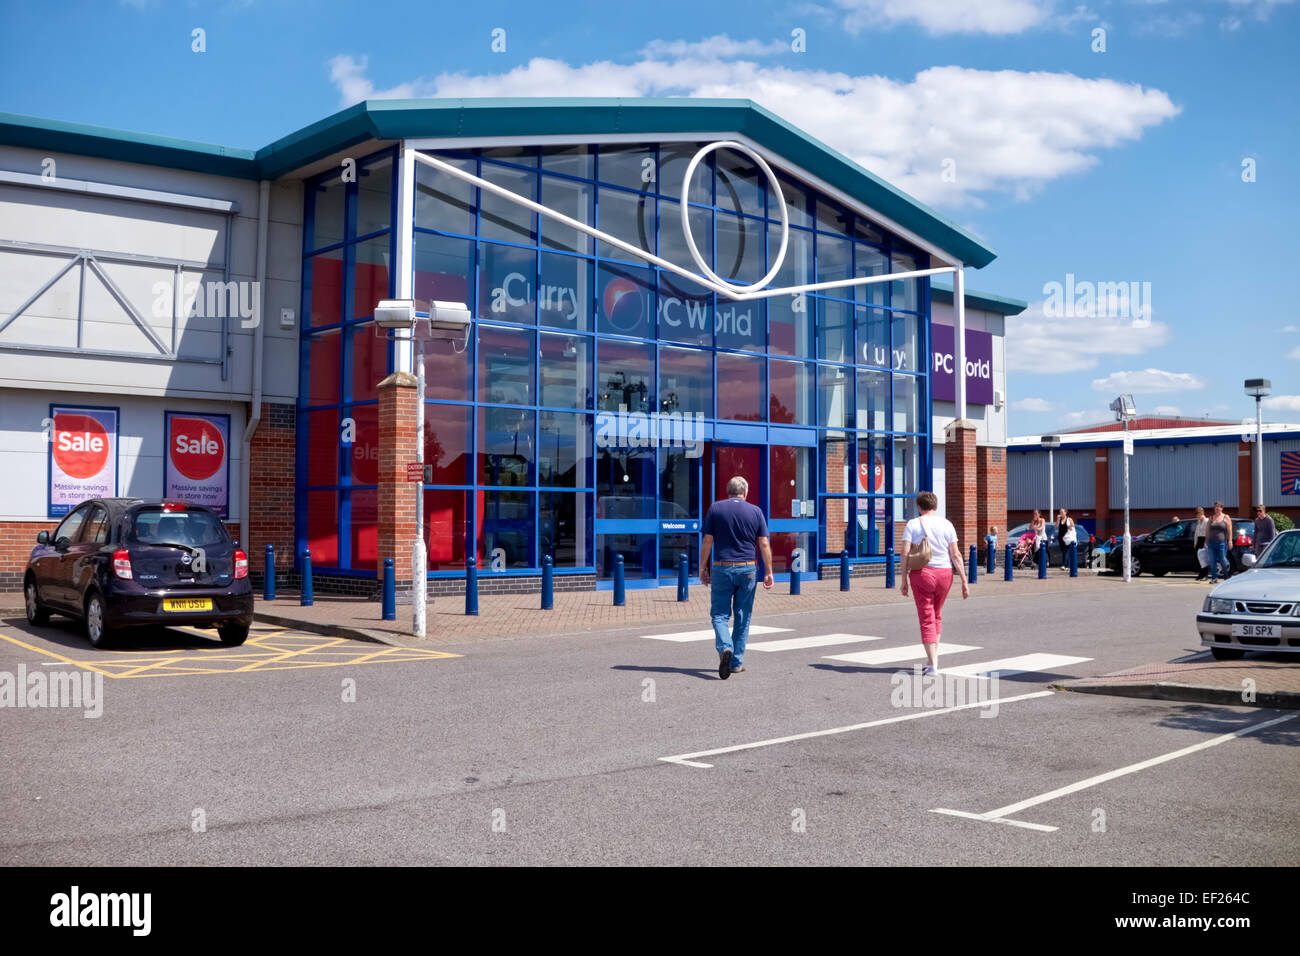 The Currys PC World Store at the Sptifire Retail Park, Bradley Road, Trowbridge, Wiltshire, United Kingdom. - Stock Image